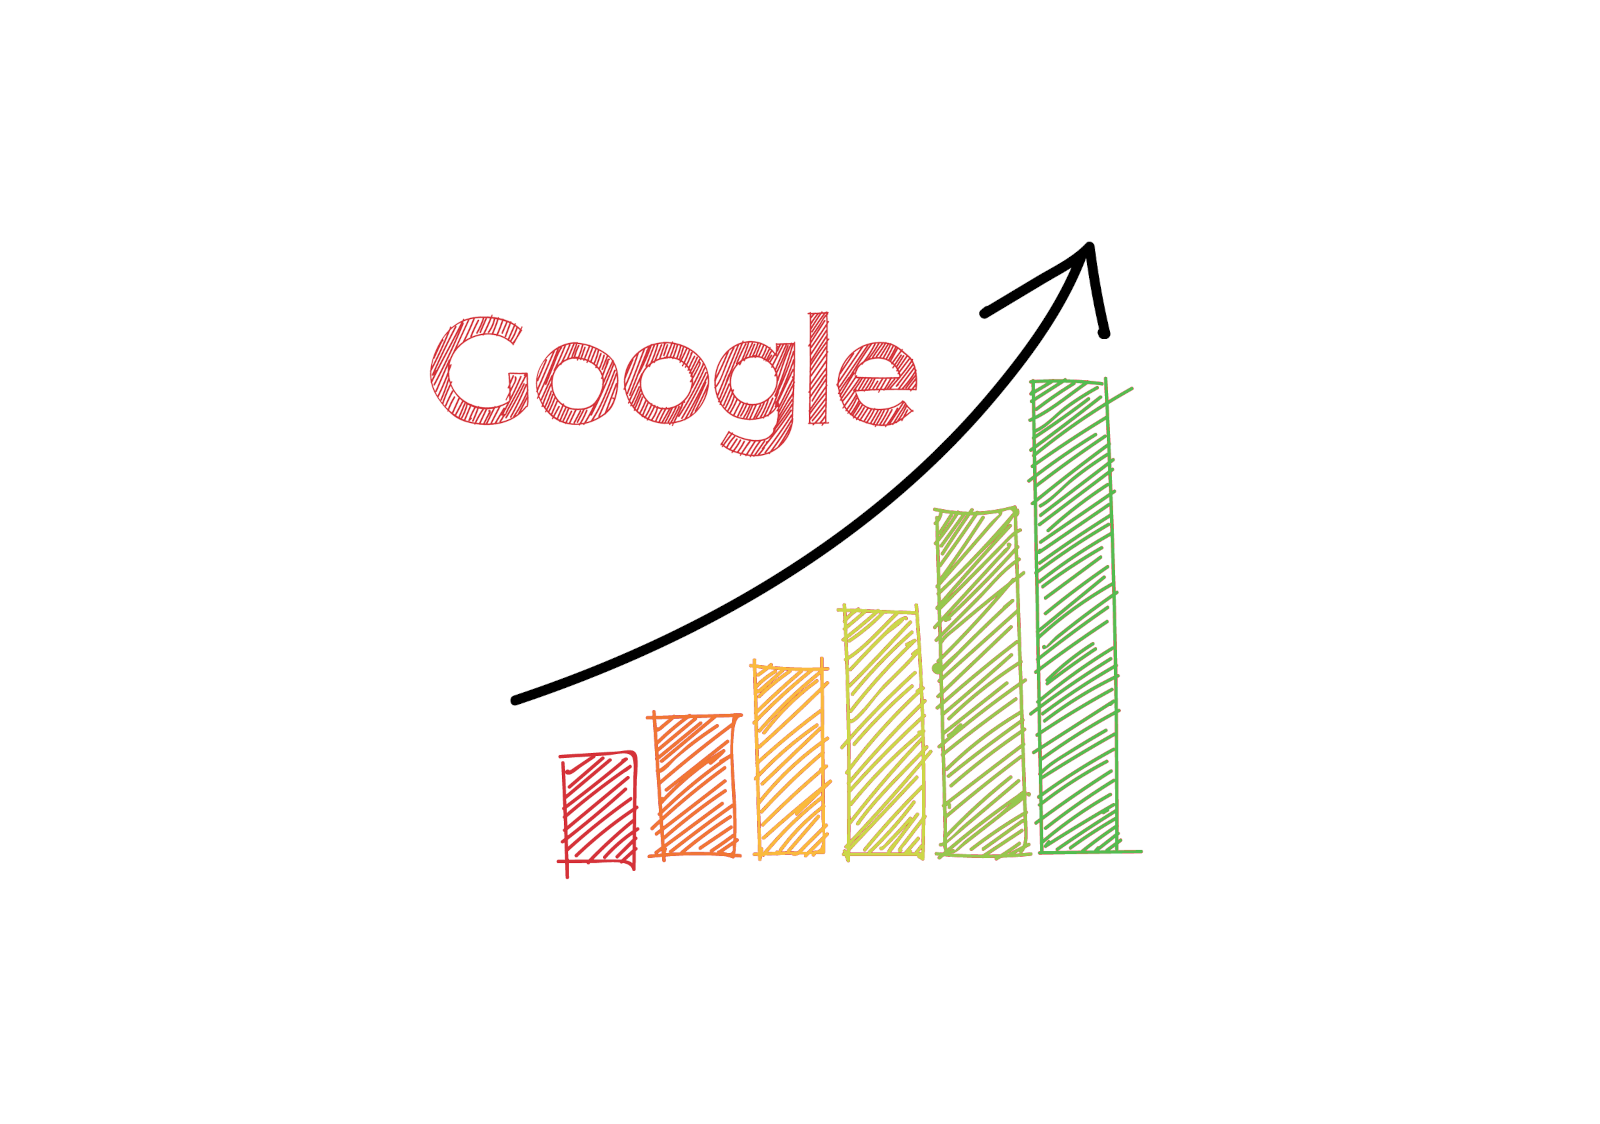 An illustration of Google rank increase